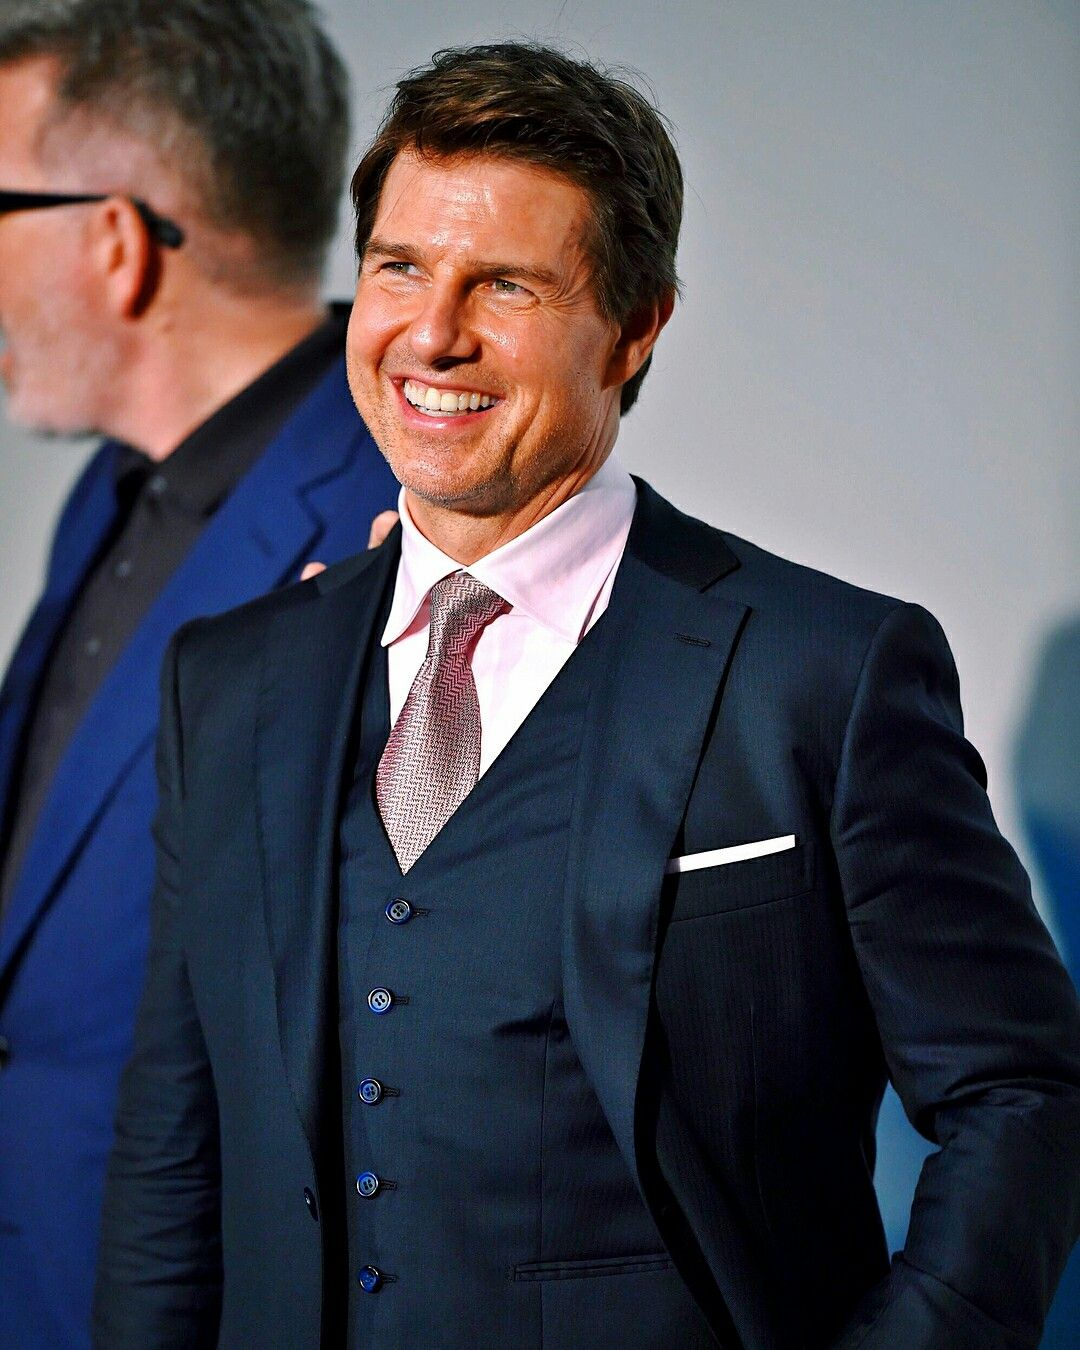 Tom Cruise 2018 Mission Impossible Fallout Tokyo Premiere Cr Tomcruisefansofficial Instagram